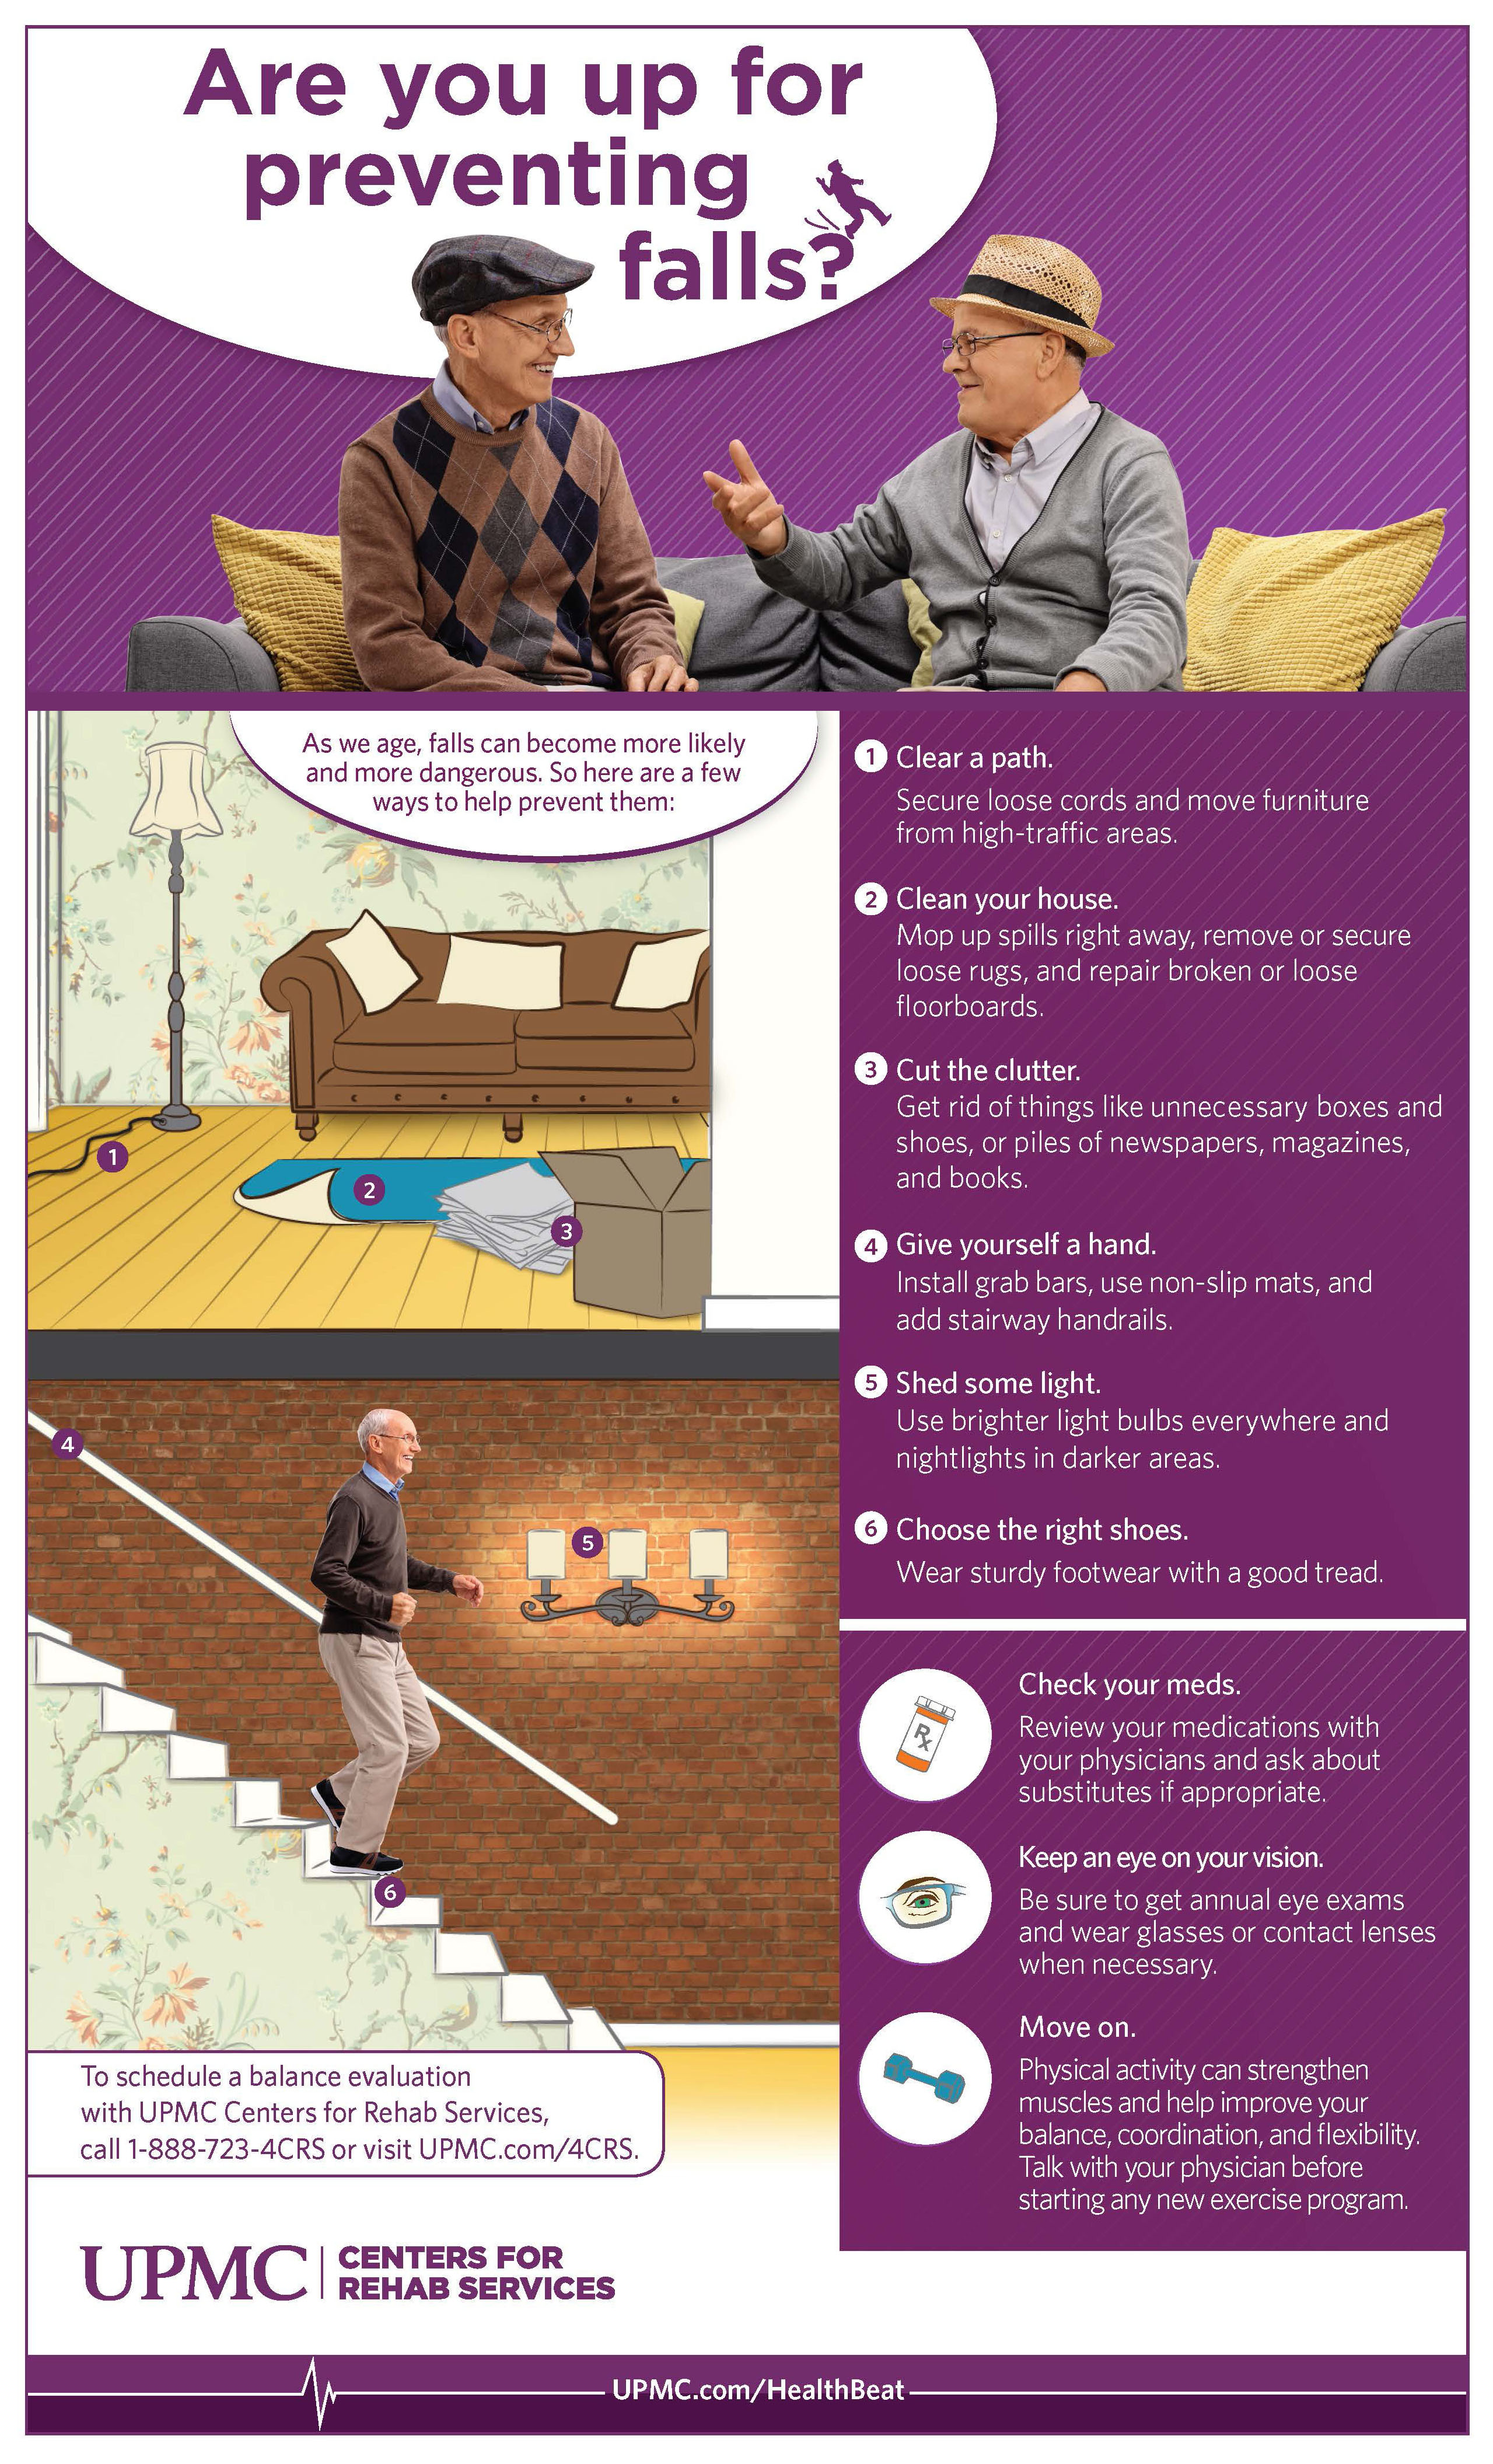 Find ways to keep your balance and prevent falls